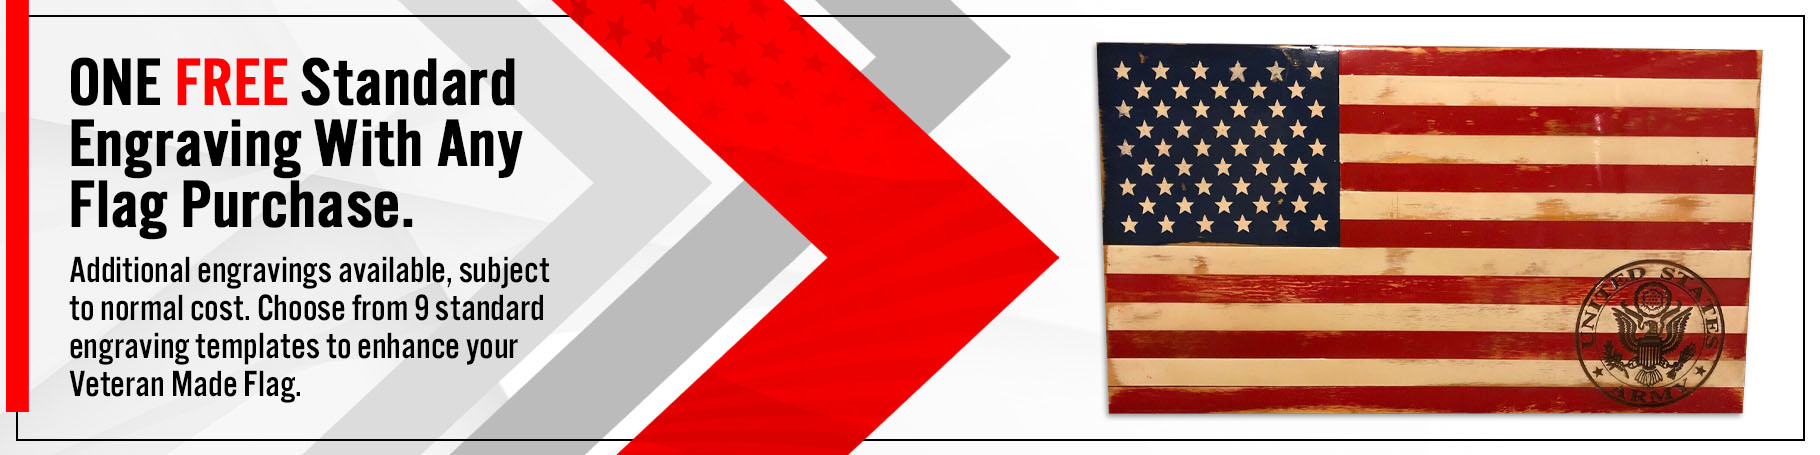 One free standard engraving with any flag purchase